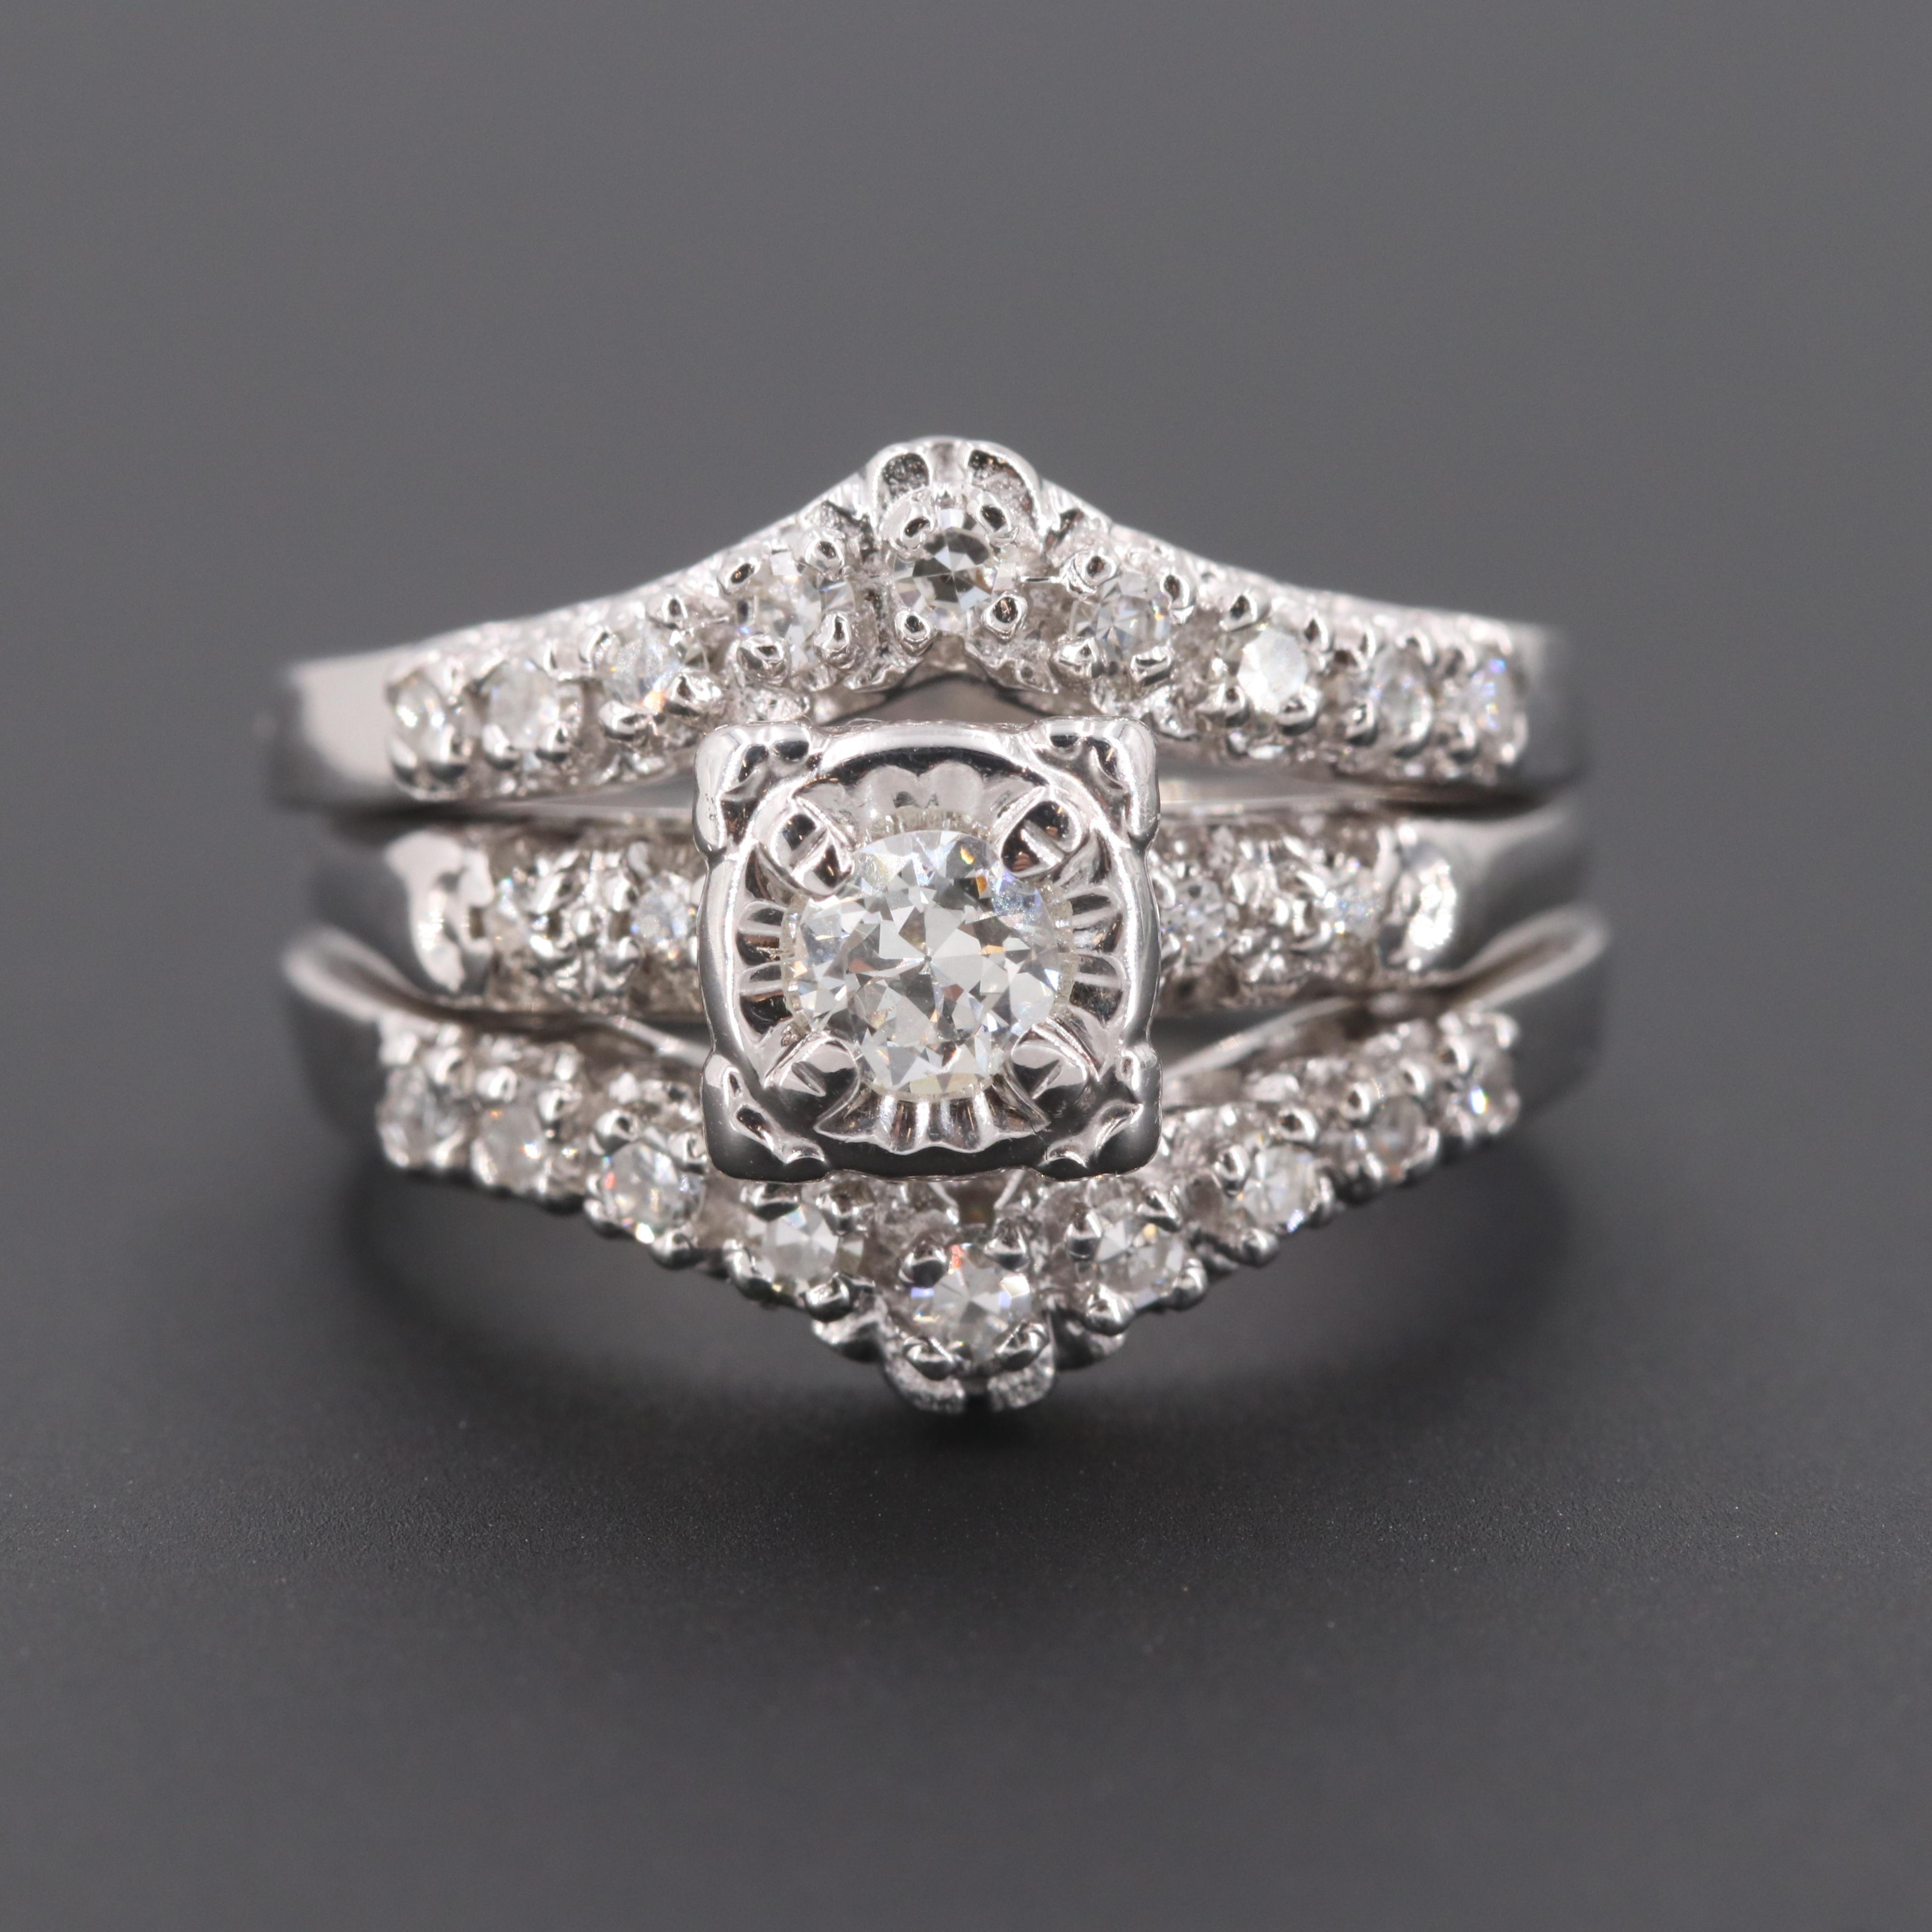 14K White Gold Diamond Ring and Ring Guard